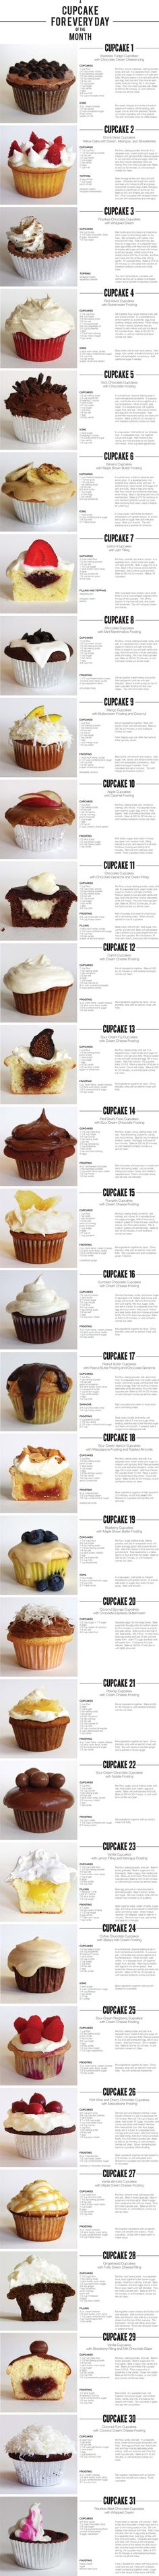 Cupcake for every day of the month -- YUM!